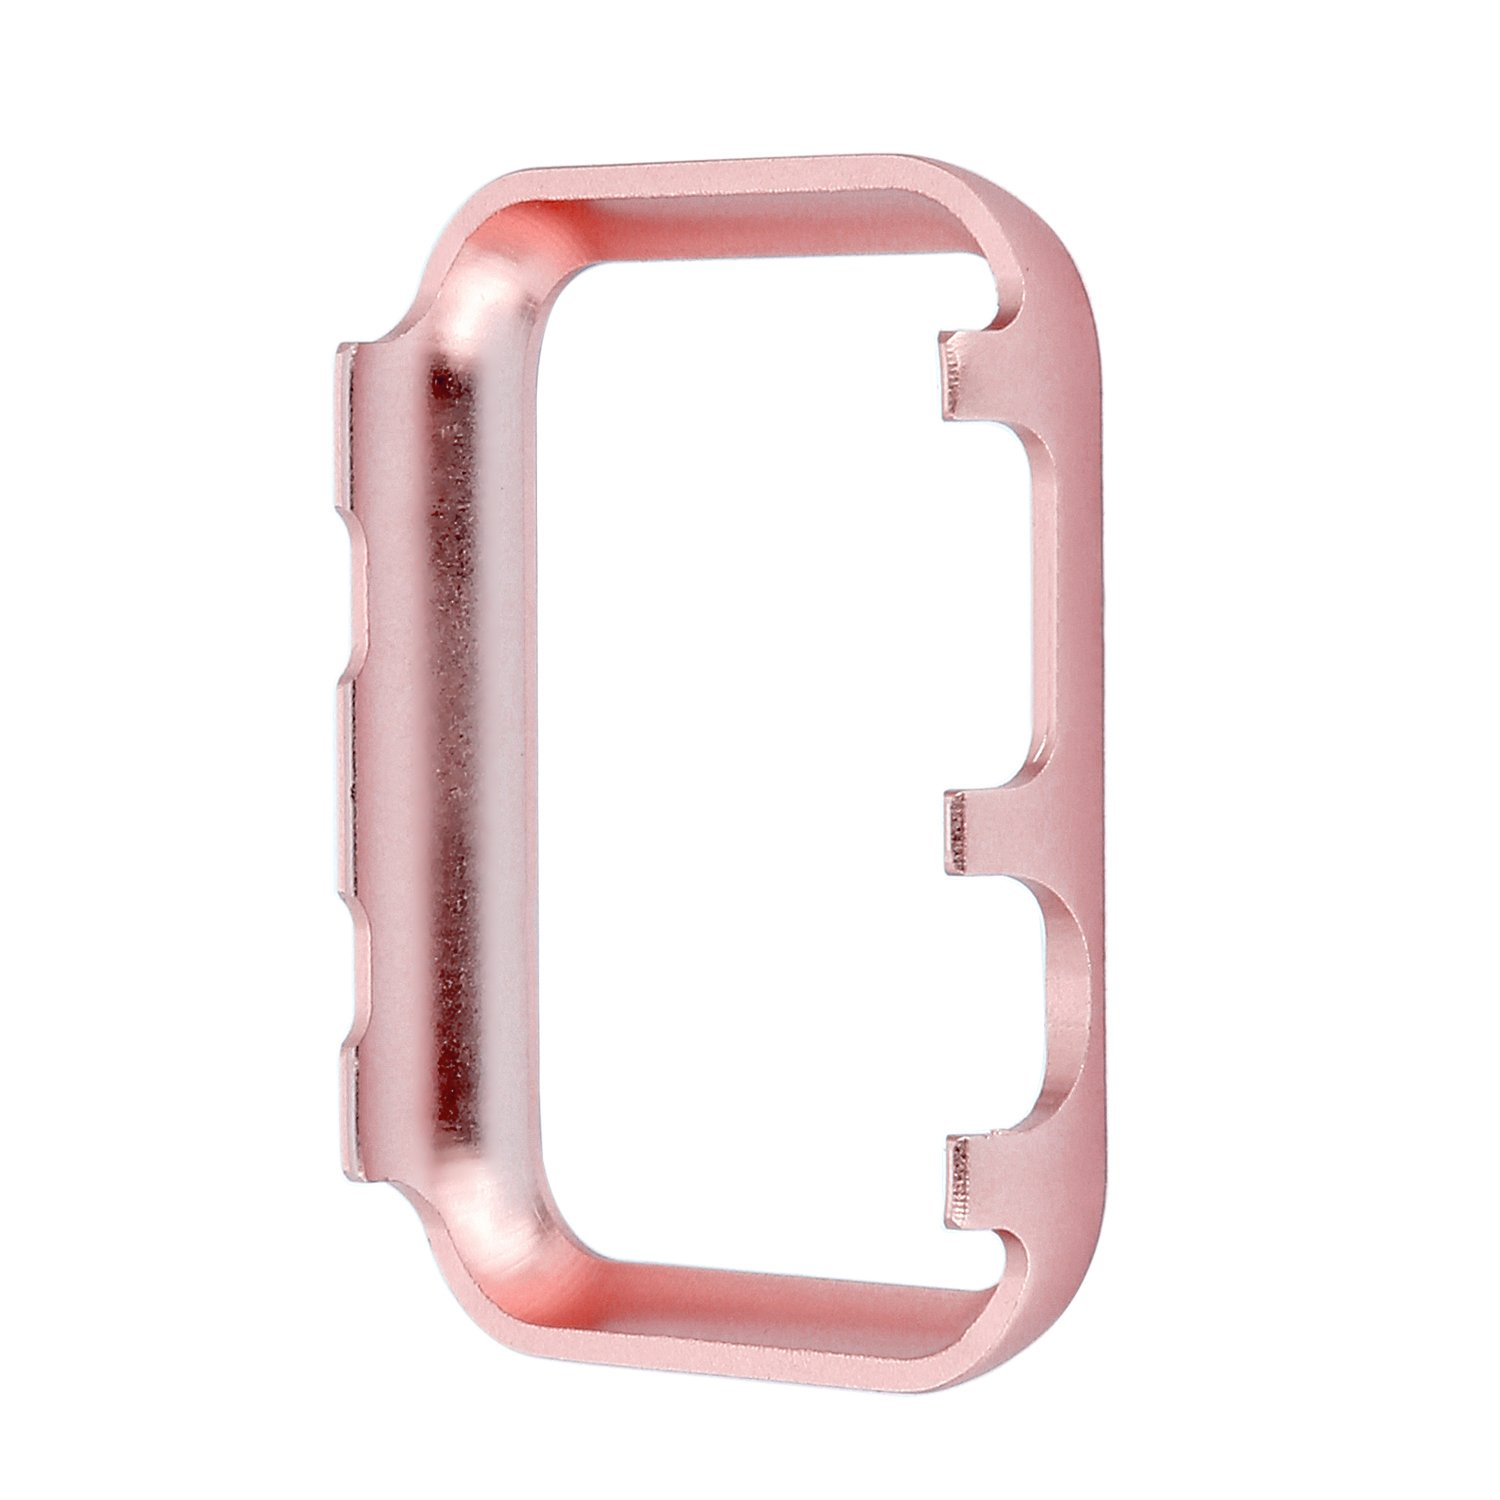 Apple Watch Bumper 42mm, iWatch Crystal Rhinestone Diamond Aluminum Case Shell Protective Frame Cover for 42mm Apple Watch Series 3/2/1 - Rose Gold by Clatune (Image #7)